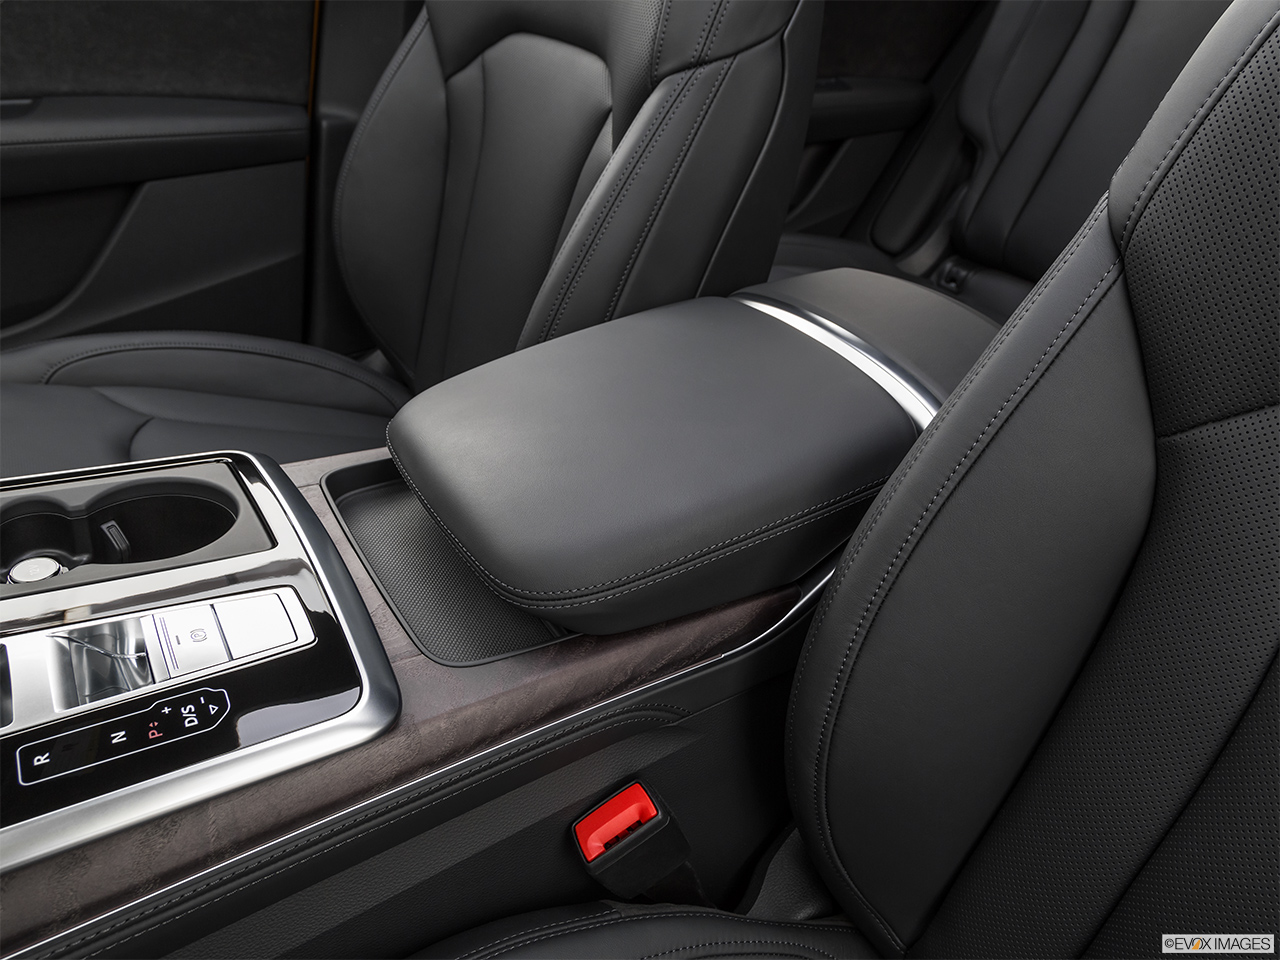 2019 Audi Q8 Prestige 3.0 TFSI Front center console with closed lid, from driver's side looking down